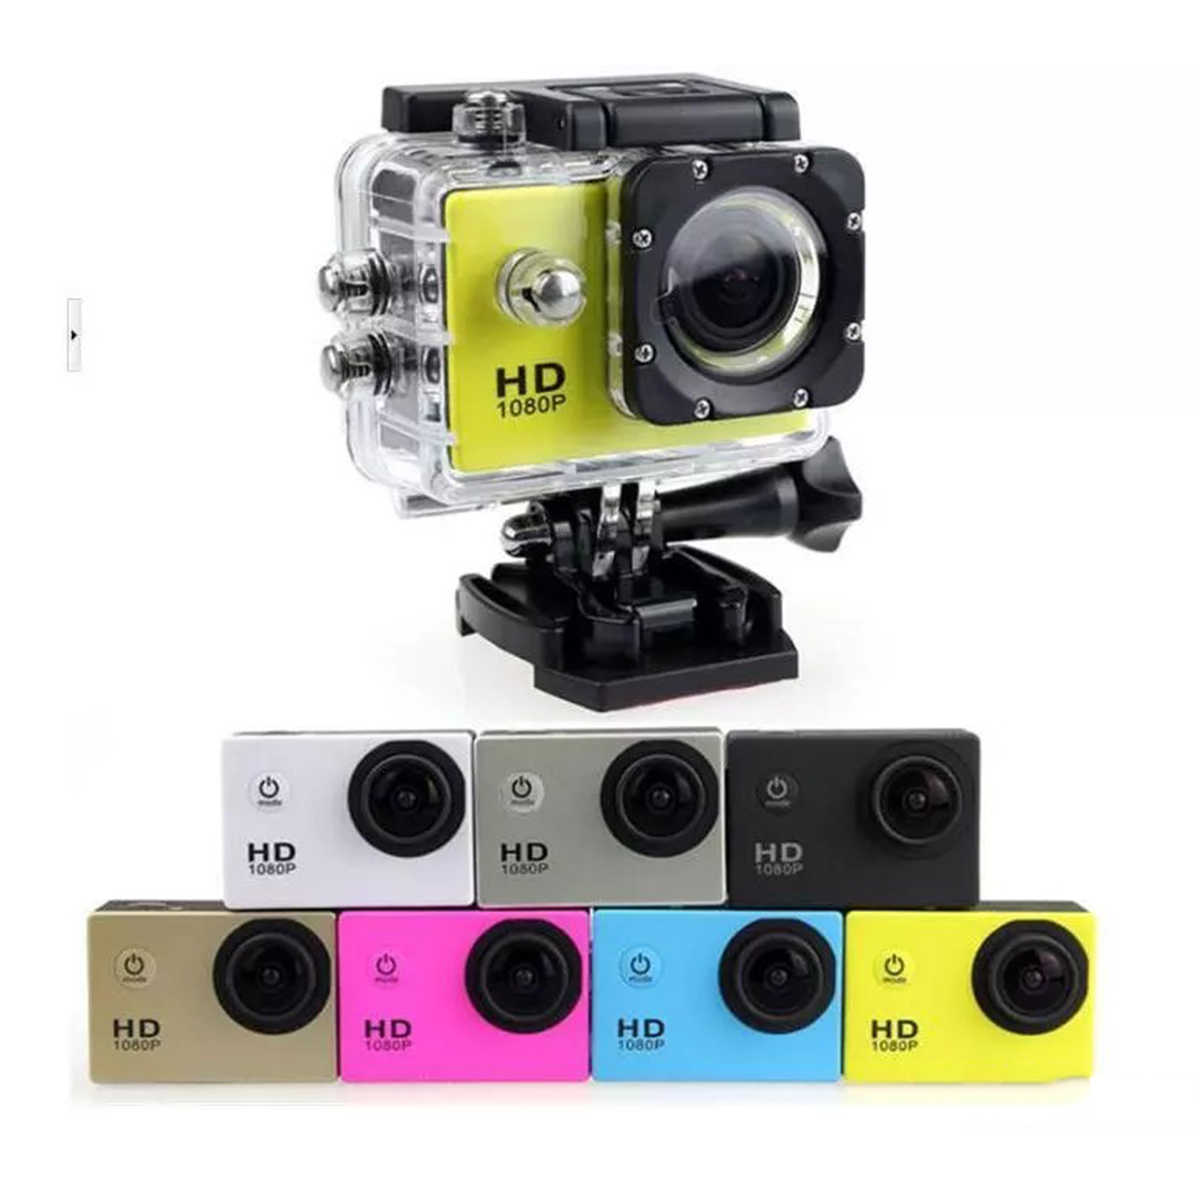 SJ4000 Actie Camera Duiken 30 M Waterdichte 1080 P Full HD Go Onderwater Helm Sport Camera Sport DV 12MP Foto pixel Camera